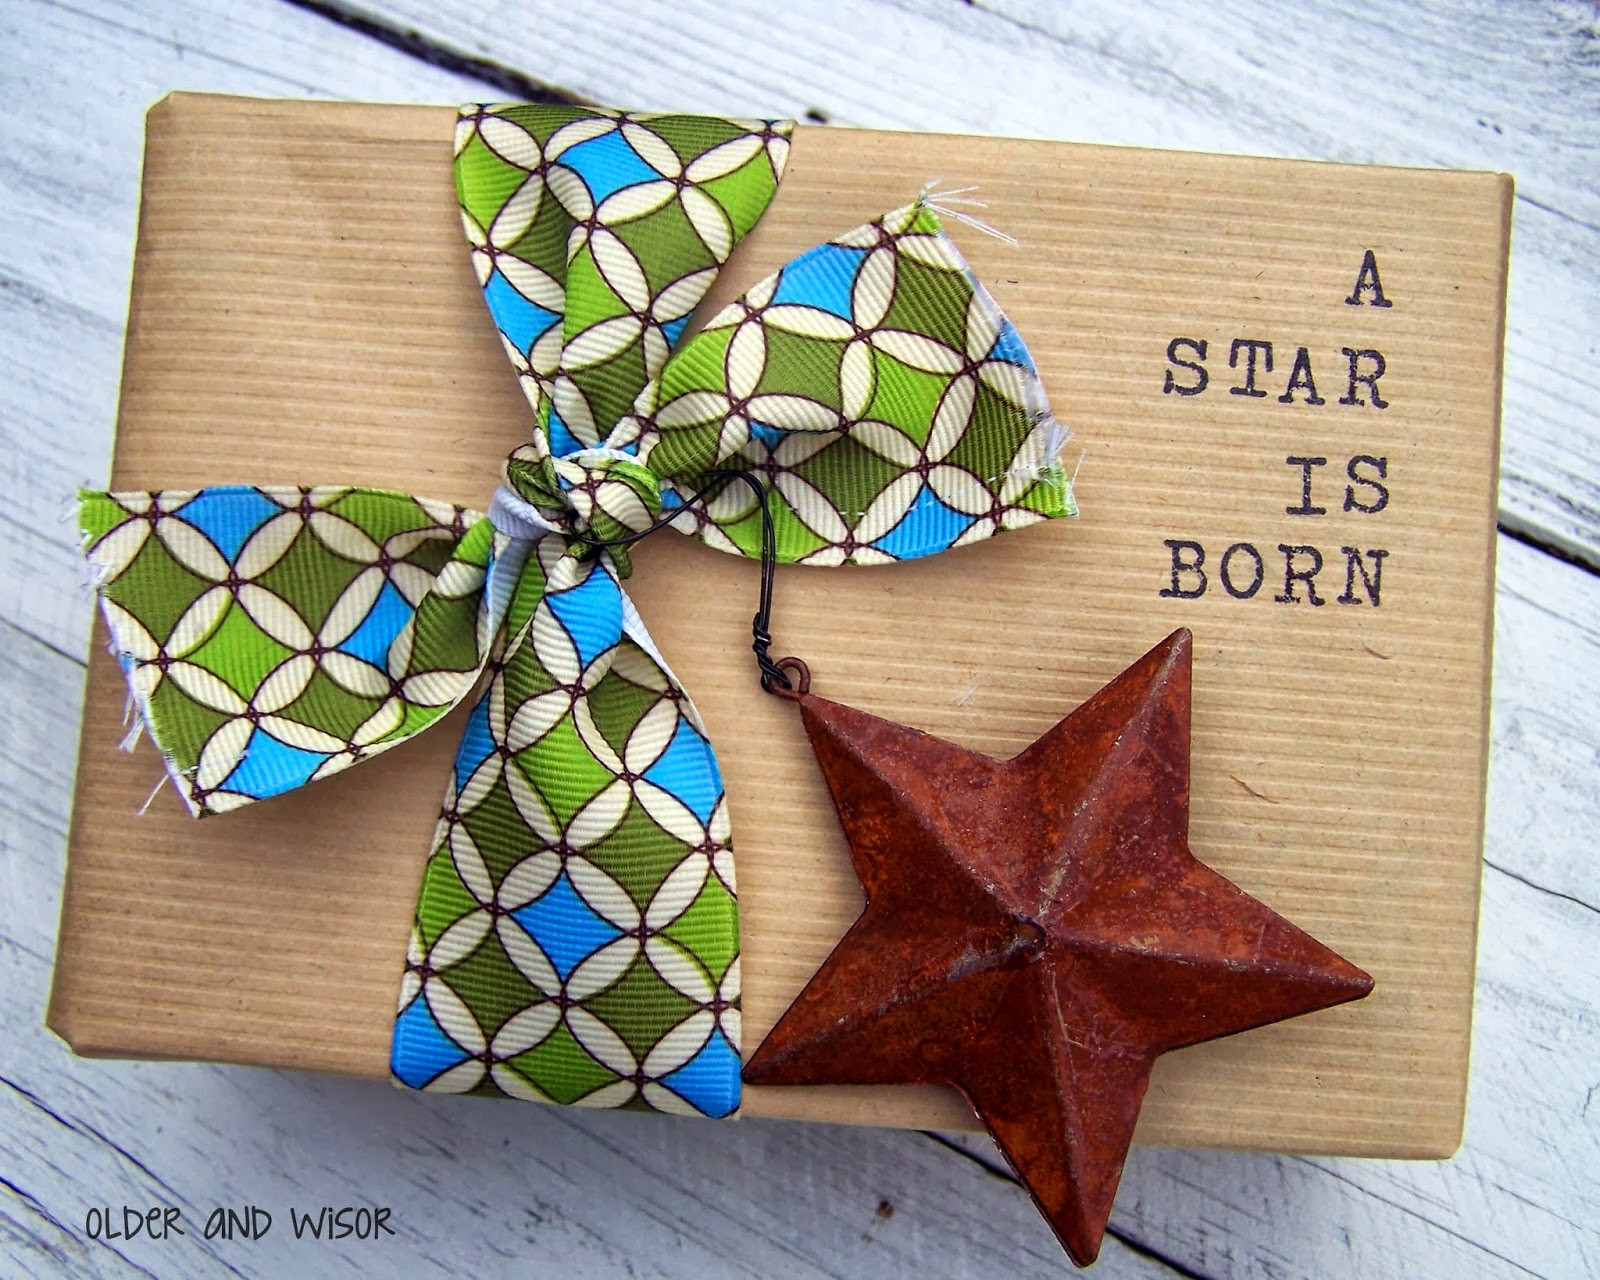 Best ideas about Baby Shower Gift Wrapping Ideas . Save or Pin older and wisor Baby Shower Gift Wrapping Ideas Now.